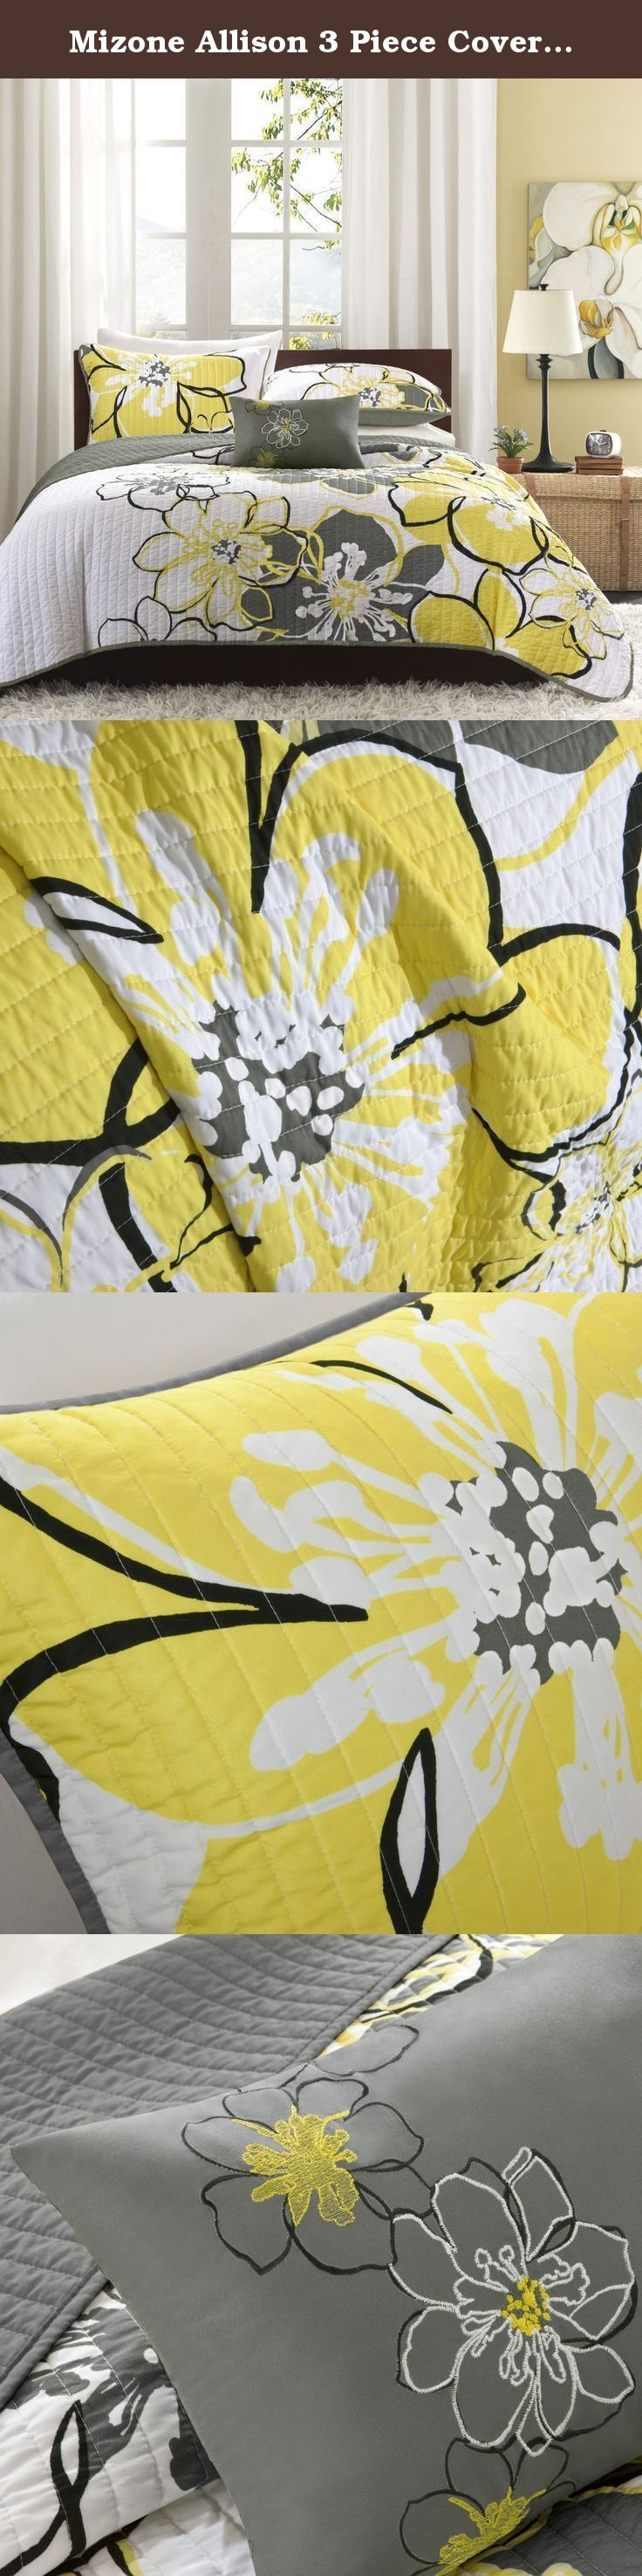 Mizone Allison 3 Piece Coverlet Set, Twin/Twin X-Large, Yellow/Grey. For a fresh look, this Allison Coverlet Set can brighten up your room with its vibrant yellow flowers and corresponding sham. Coverlet and sham reverse are dark grey for a great background for the bright yellow flowers.